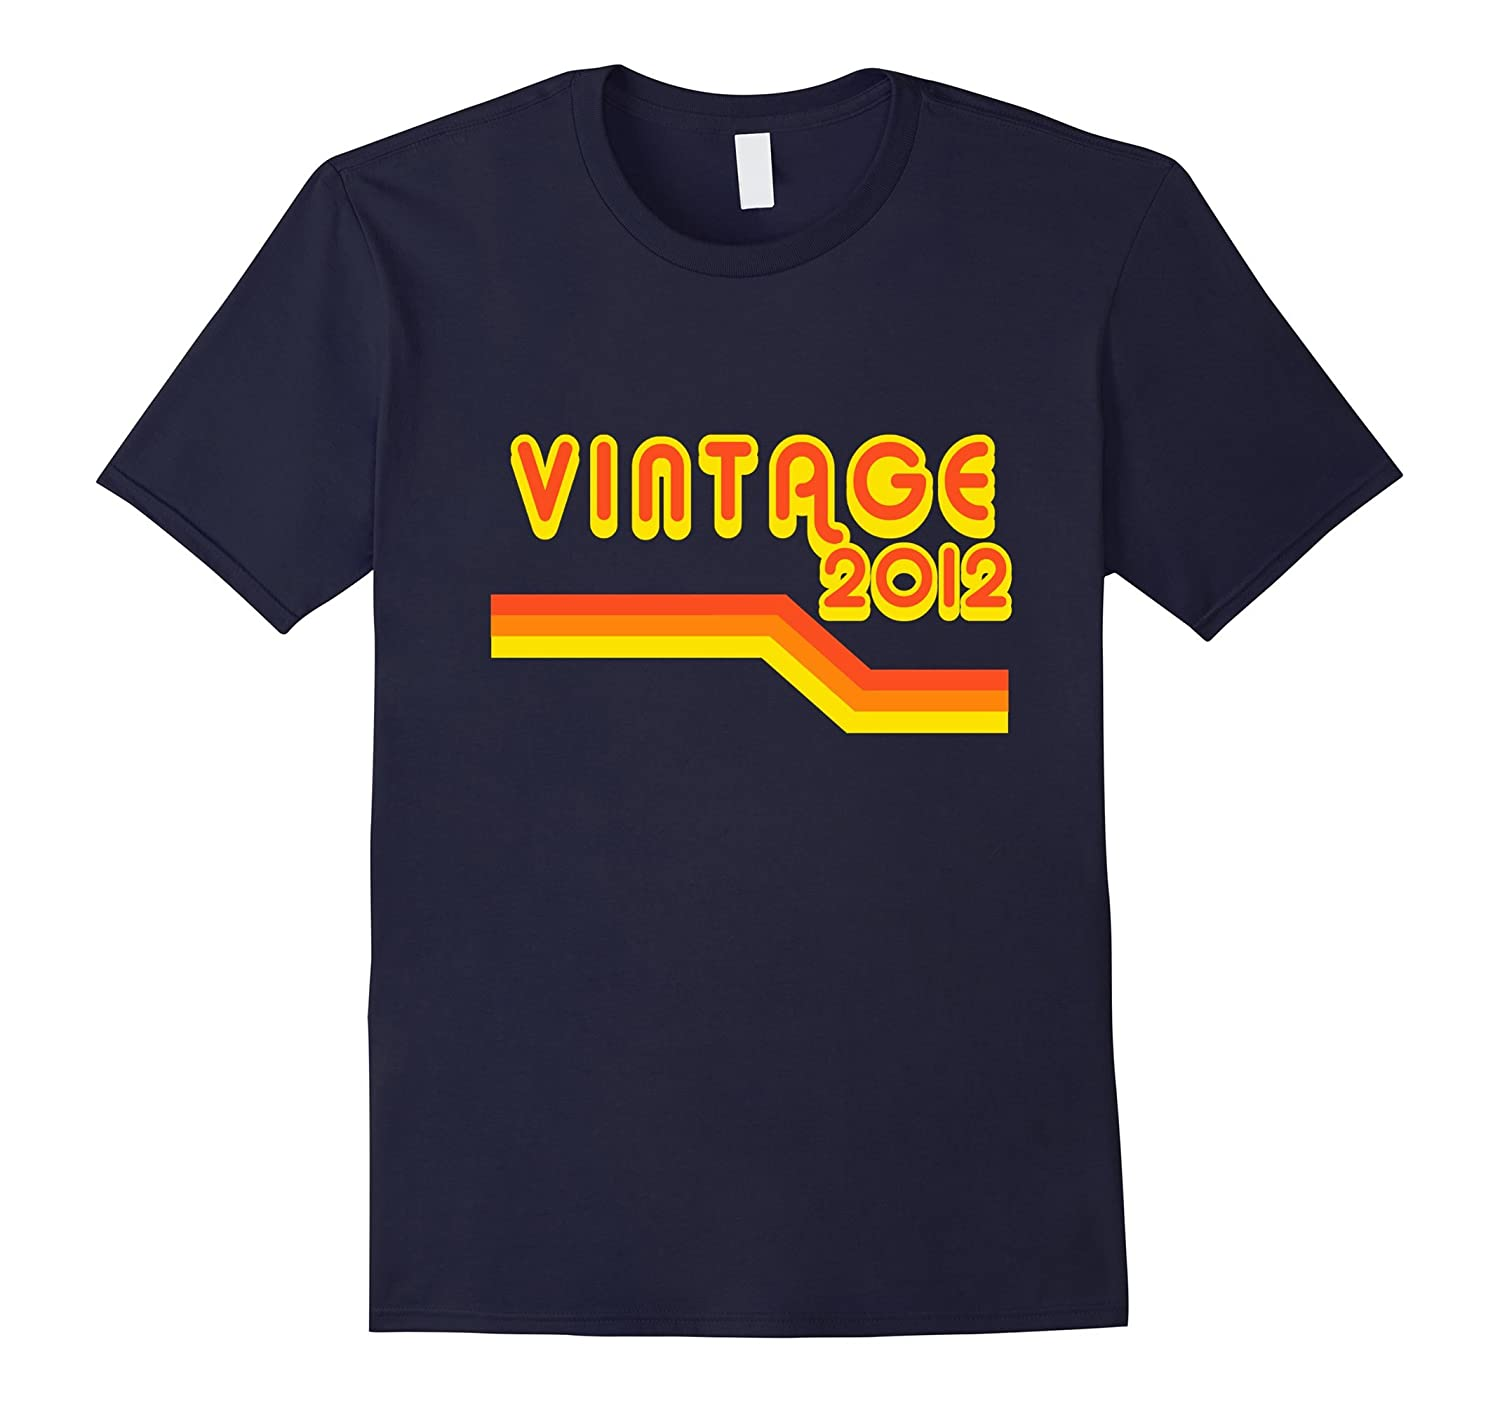 2012 Retro Pop Vintage T-Shirt 5 yrs old Bday 5th Birthday-CL